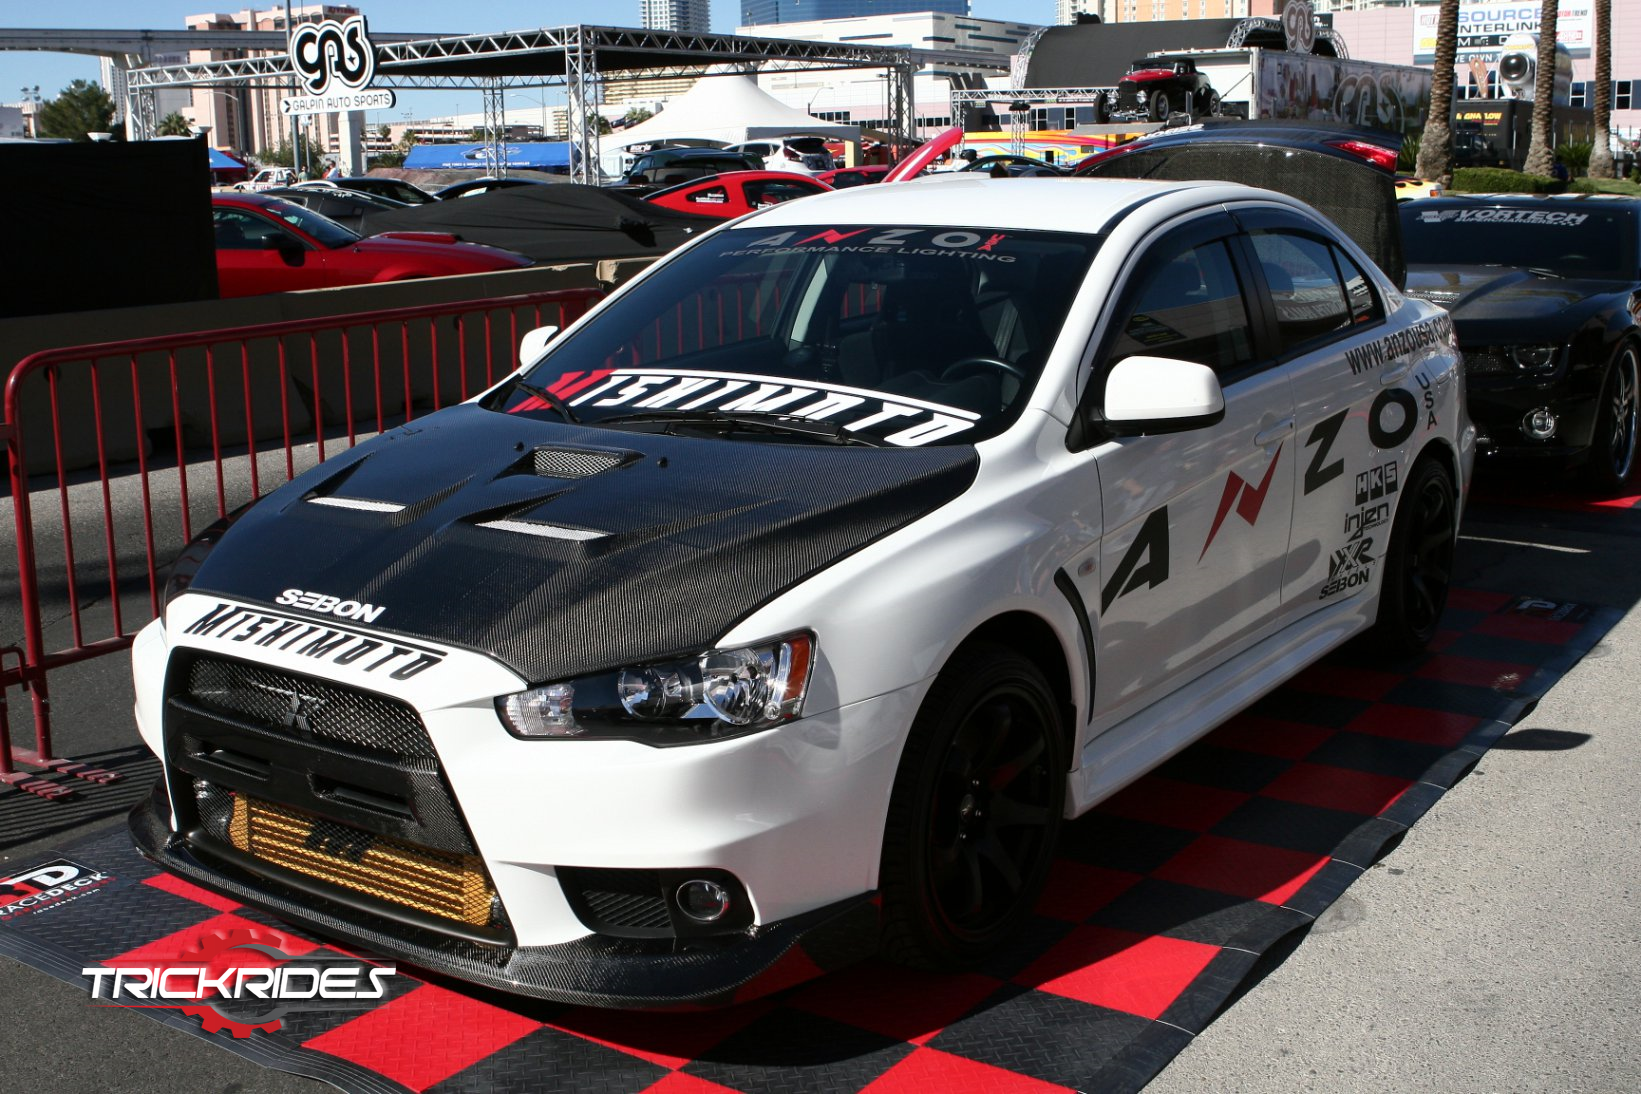 Mitsubishi Lancer Evolution 10 By Anzousa At Sema Trickrides Sema Customcarshow Aftermarketaccessories Trickyourride